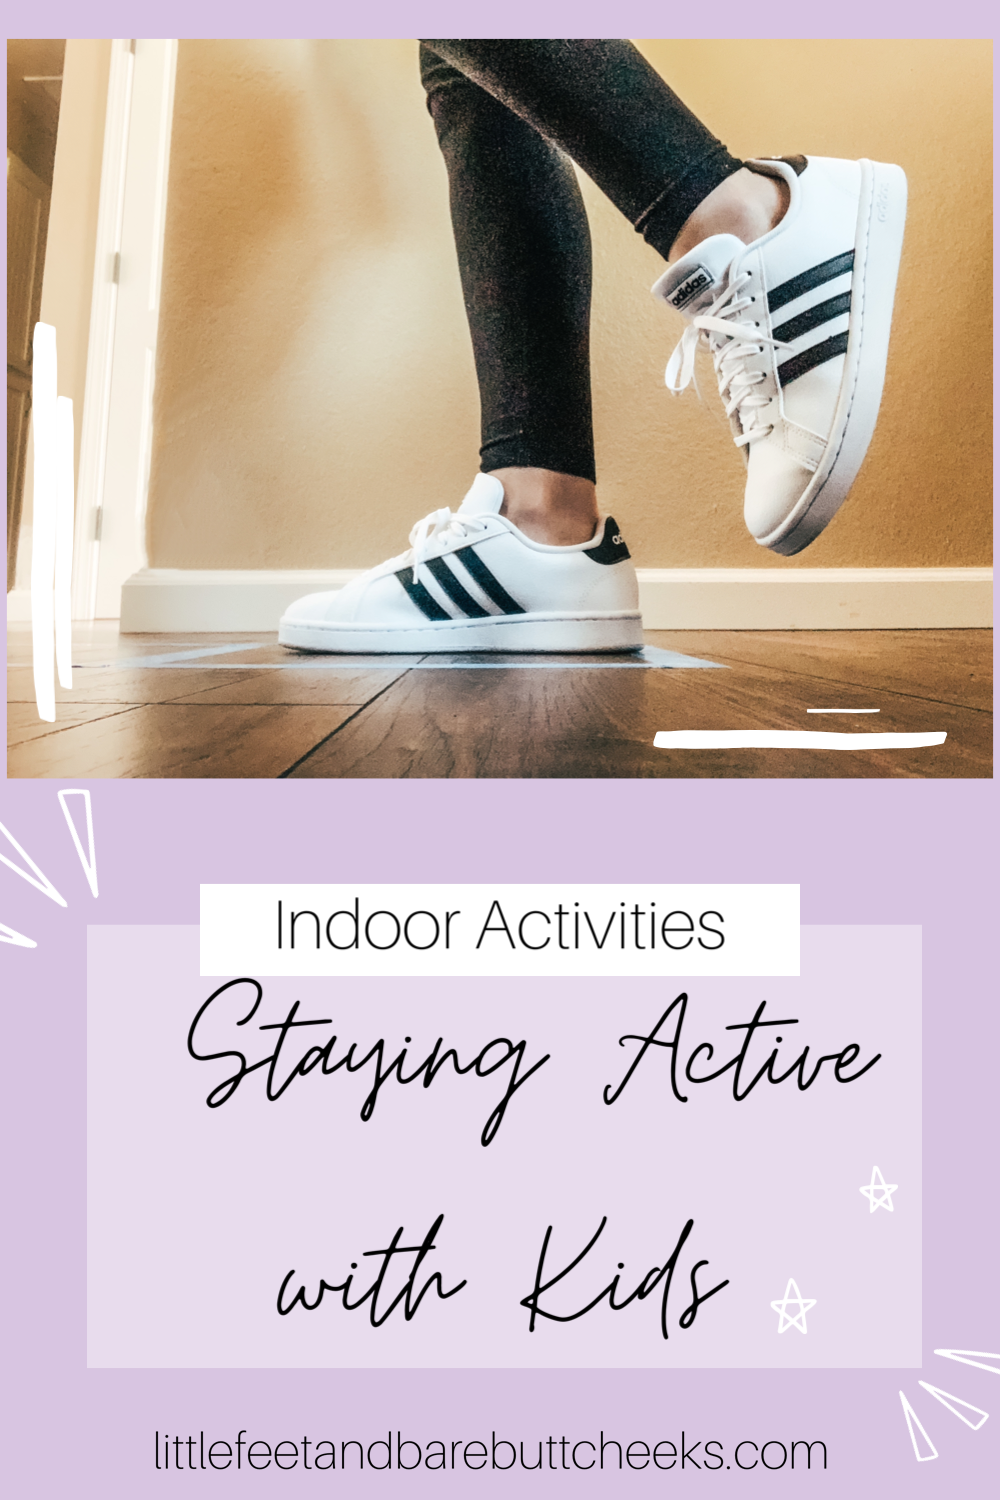 If you're stuck on how to keep your kids active while being cooped up in doors, here's a list of things my family enjoys! #stayingactive #kidsactivities #stayhome #quarentine #rainydays #funwithkids #keepkidsbusy #busytoddler #toddleractivity #toddlergames #kidsgames #indoorgames #howtokeepkidsbusy #familygames #familyfun #balloons #balloongame #indoorfun